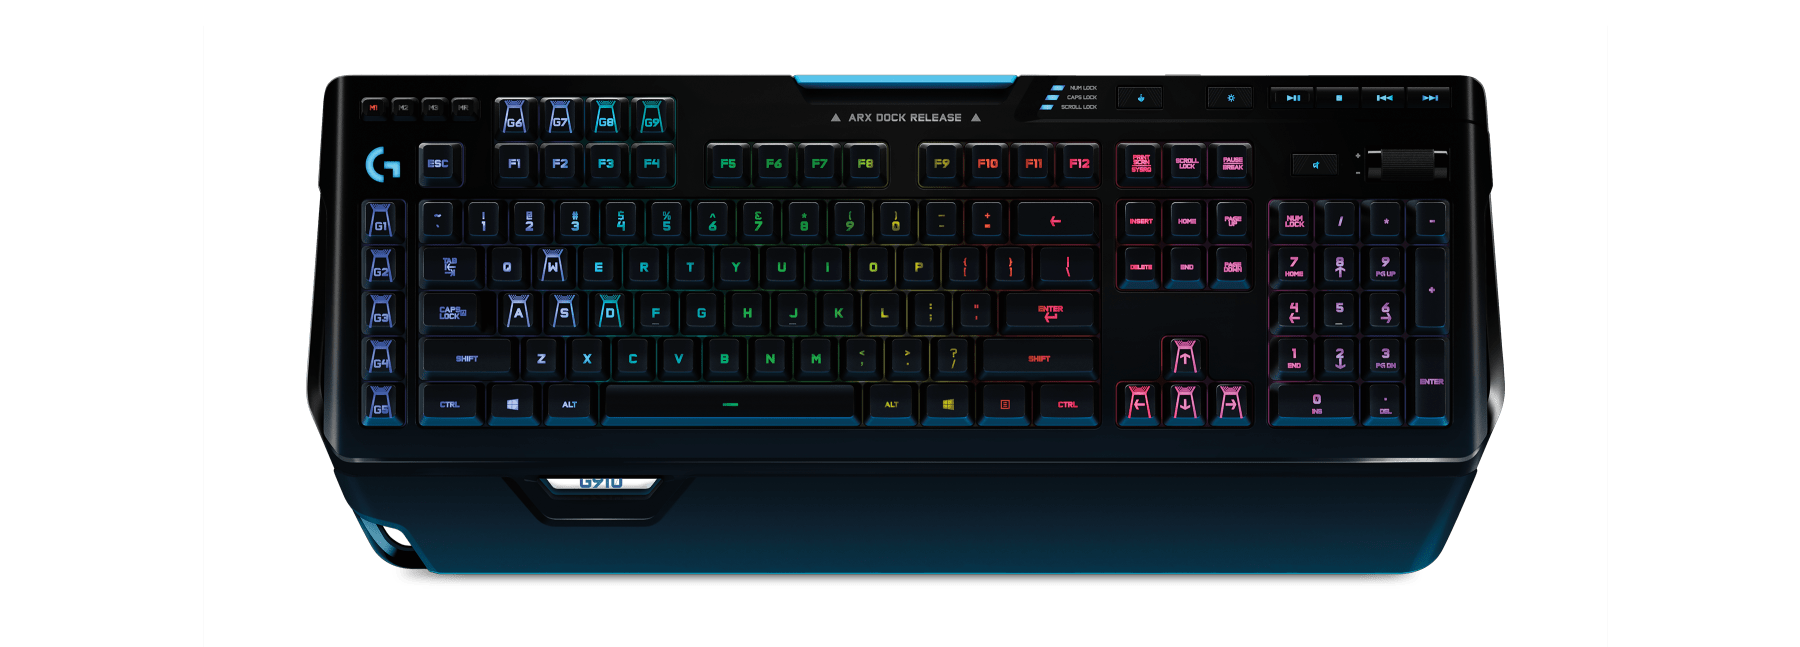 G910 RGB Mechanical Gaming Keyboard